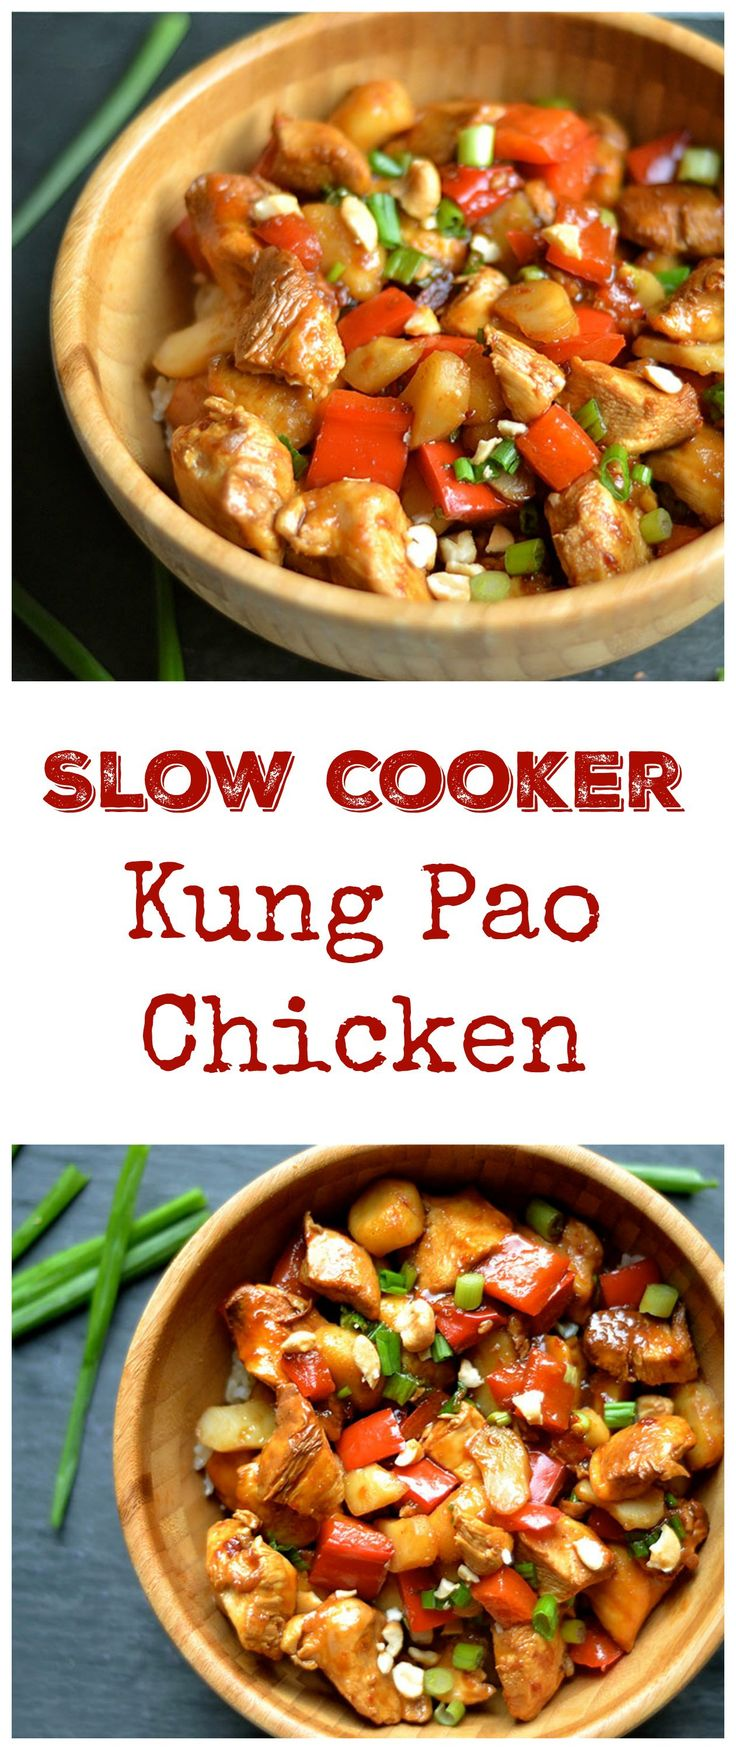 Slow Cooker Kung Pao Chicken Recipe Slow Cooker